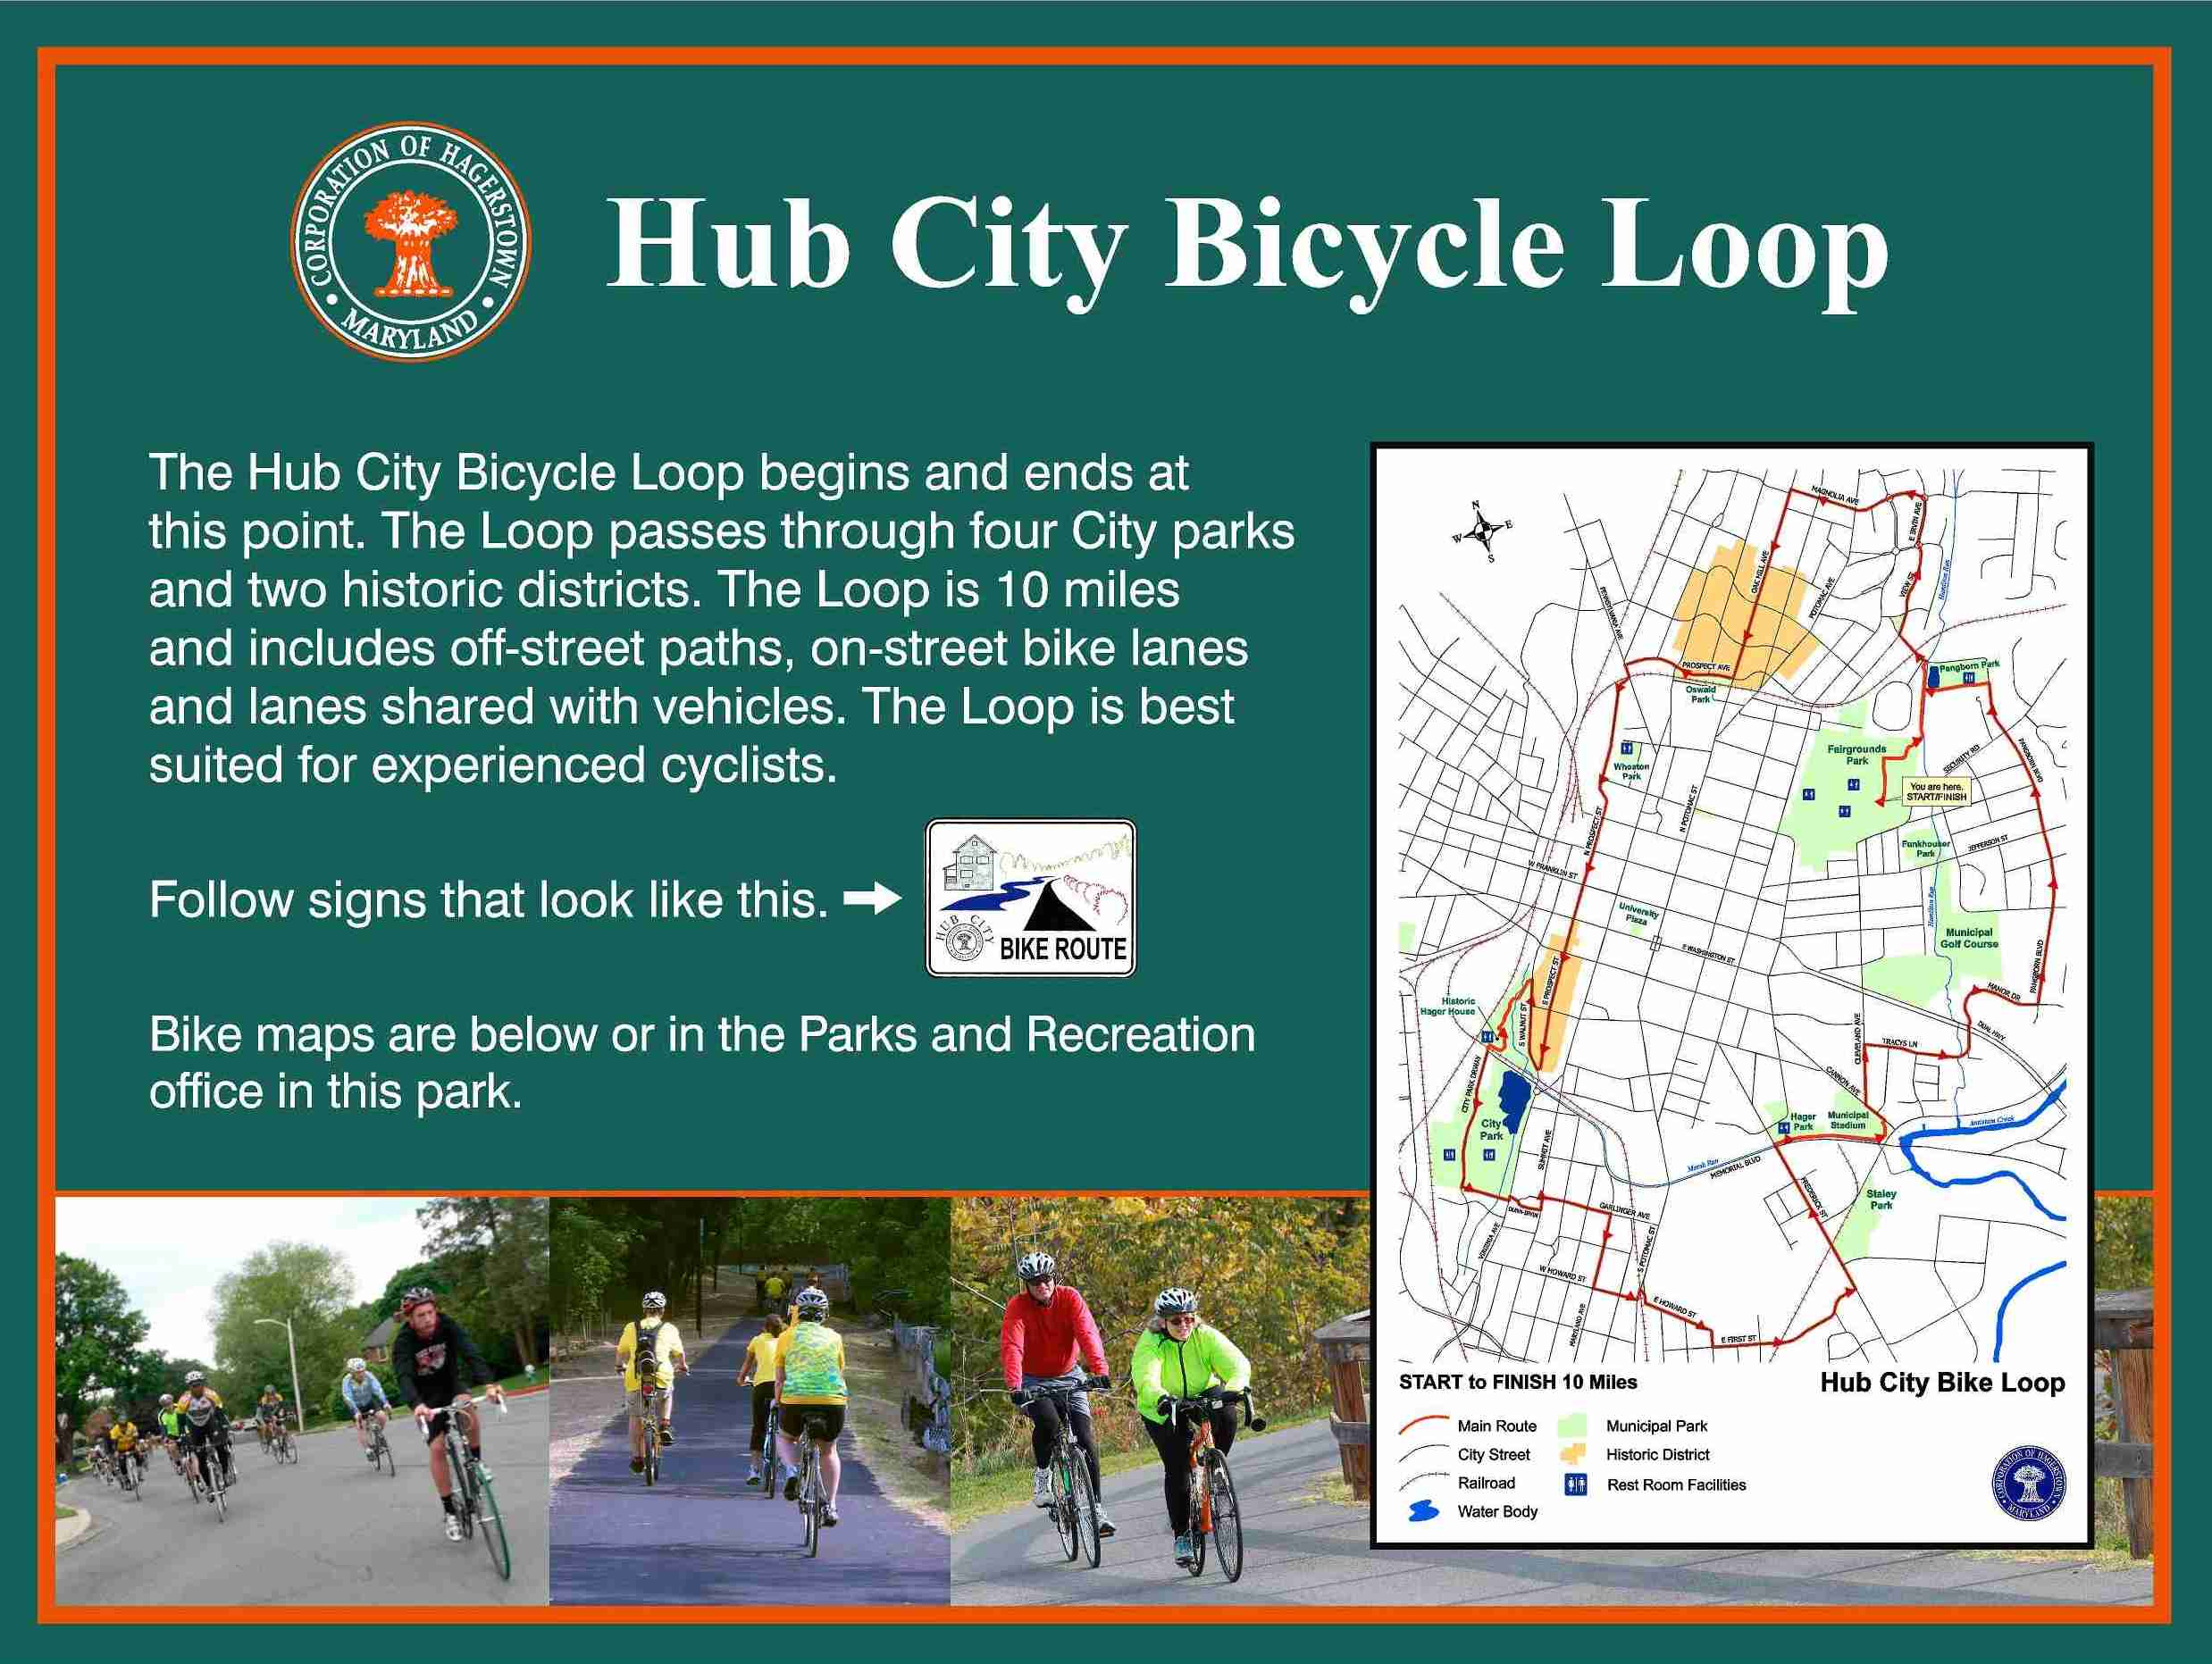 Hub City Bike Loop sign